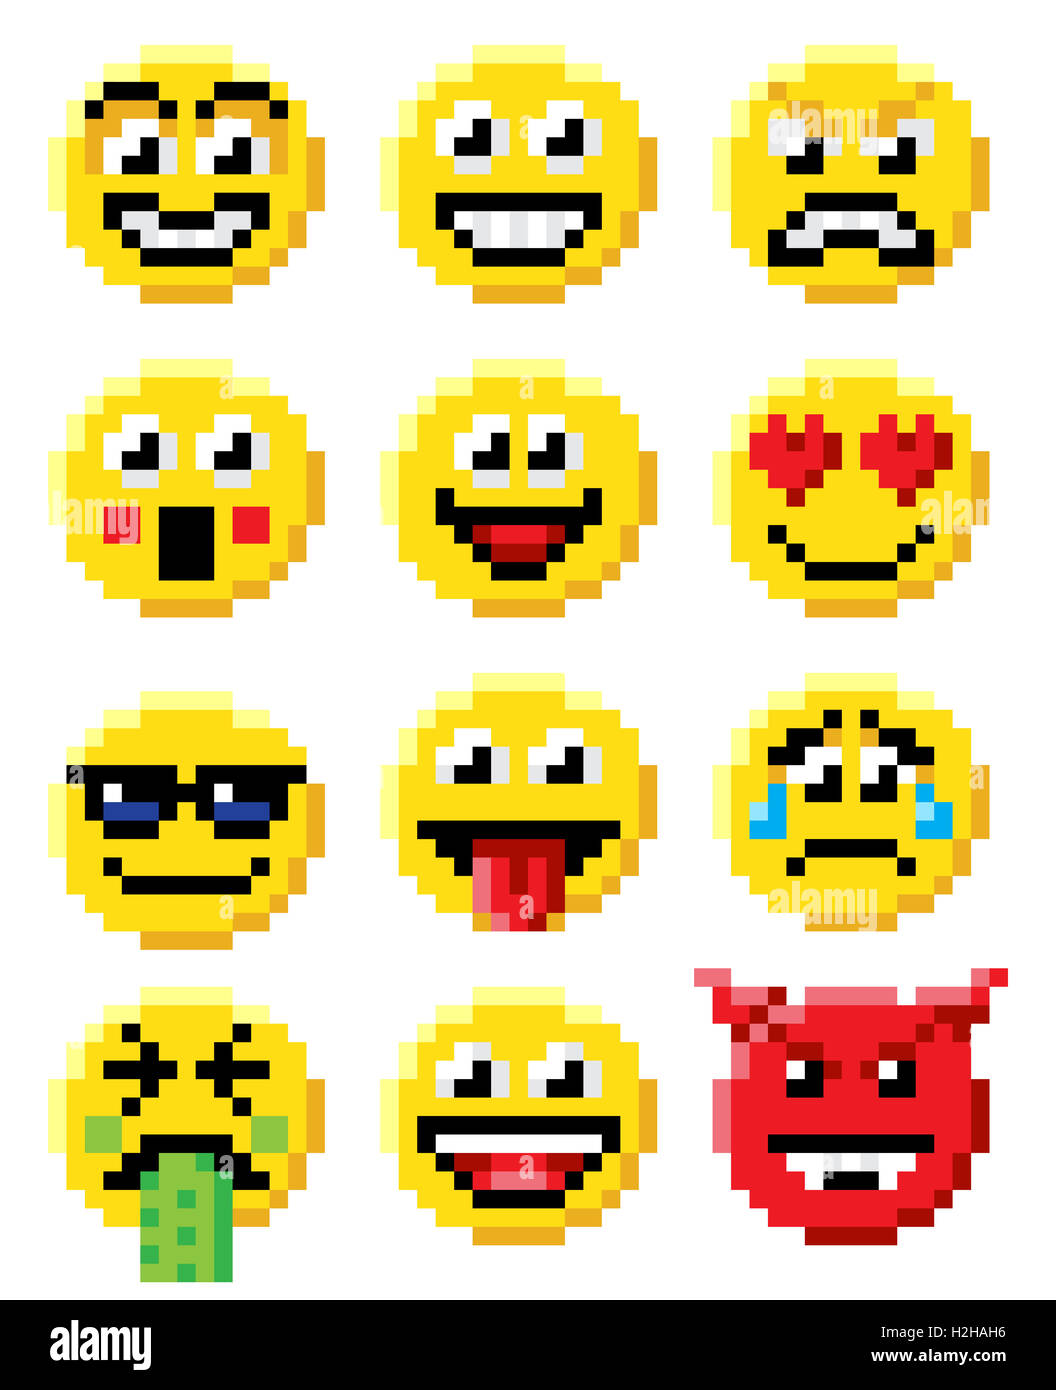 Pixel Art Set Of Emoji Or Emoticon Face Icons In A Retro 8